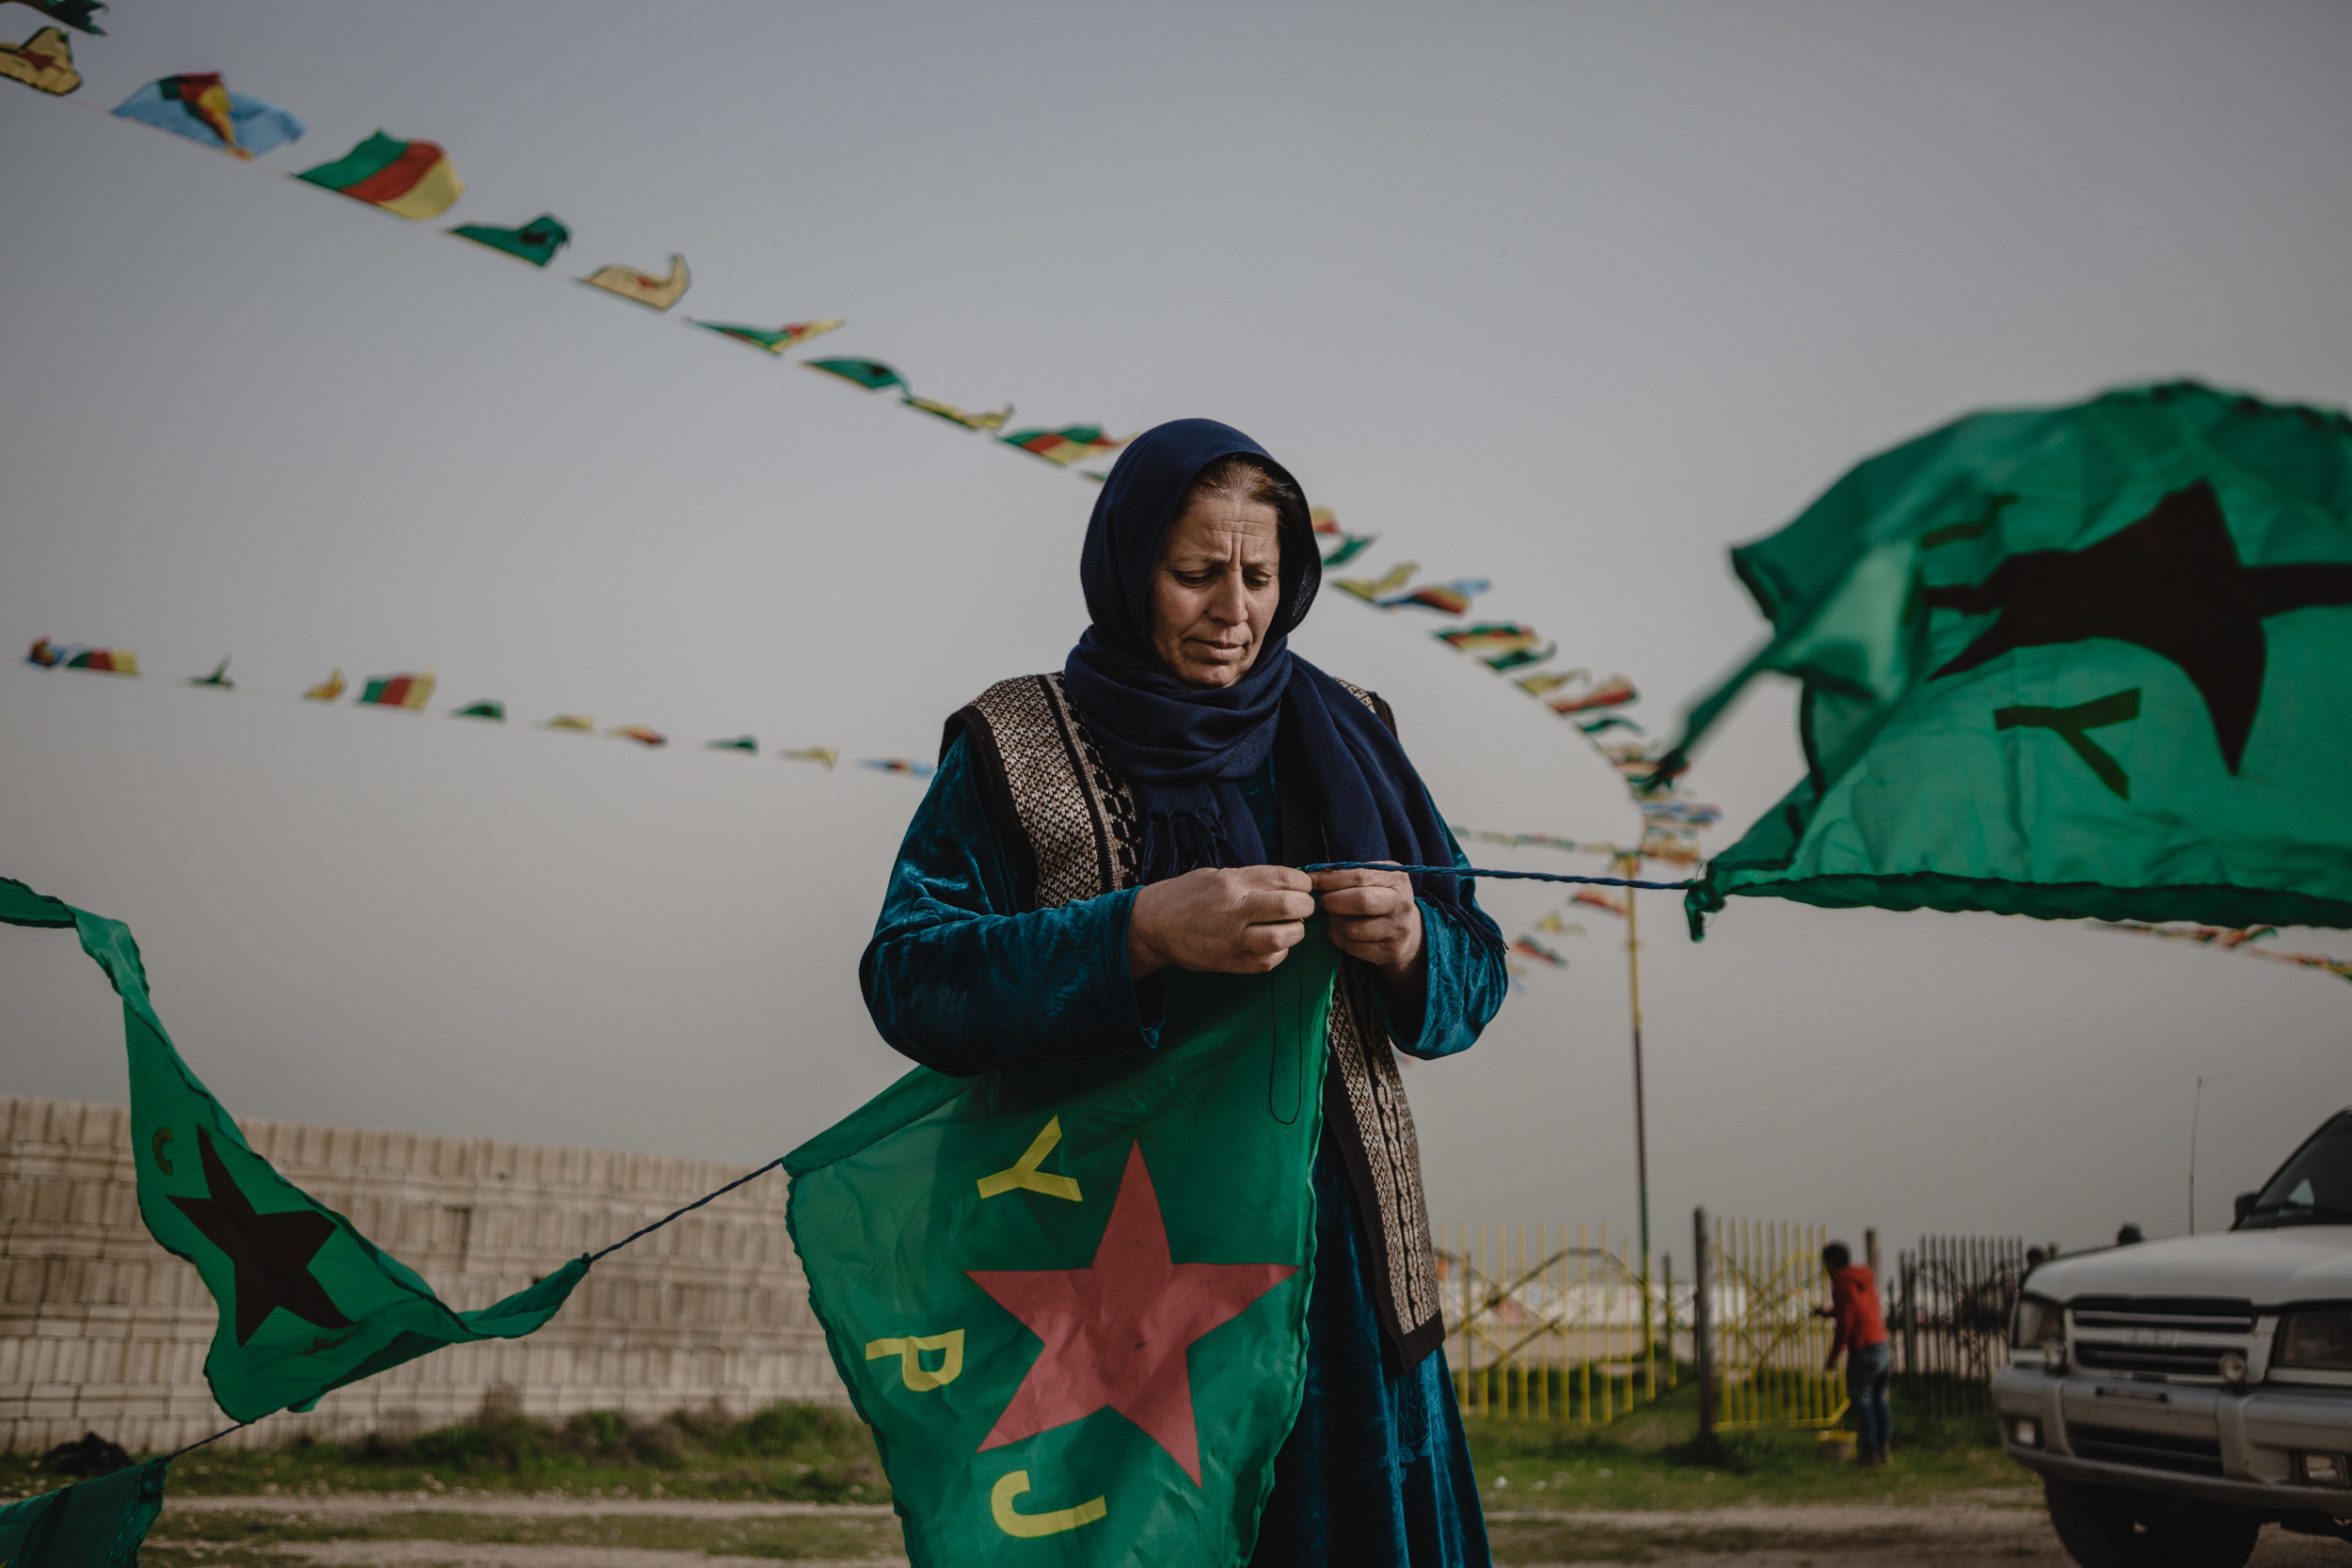 A women sews Kurdish People's Defence Units (YPG) flags in Amude, Syria. The flags are for Newroz celebration that are being organized by the Democratic Union Party (PYD).